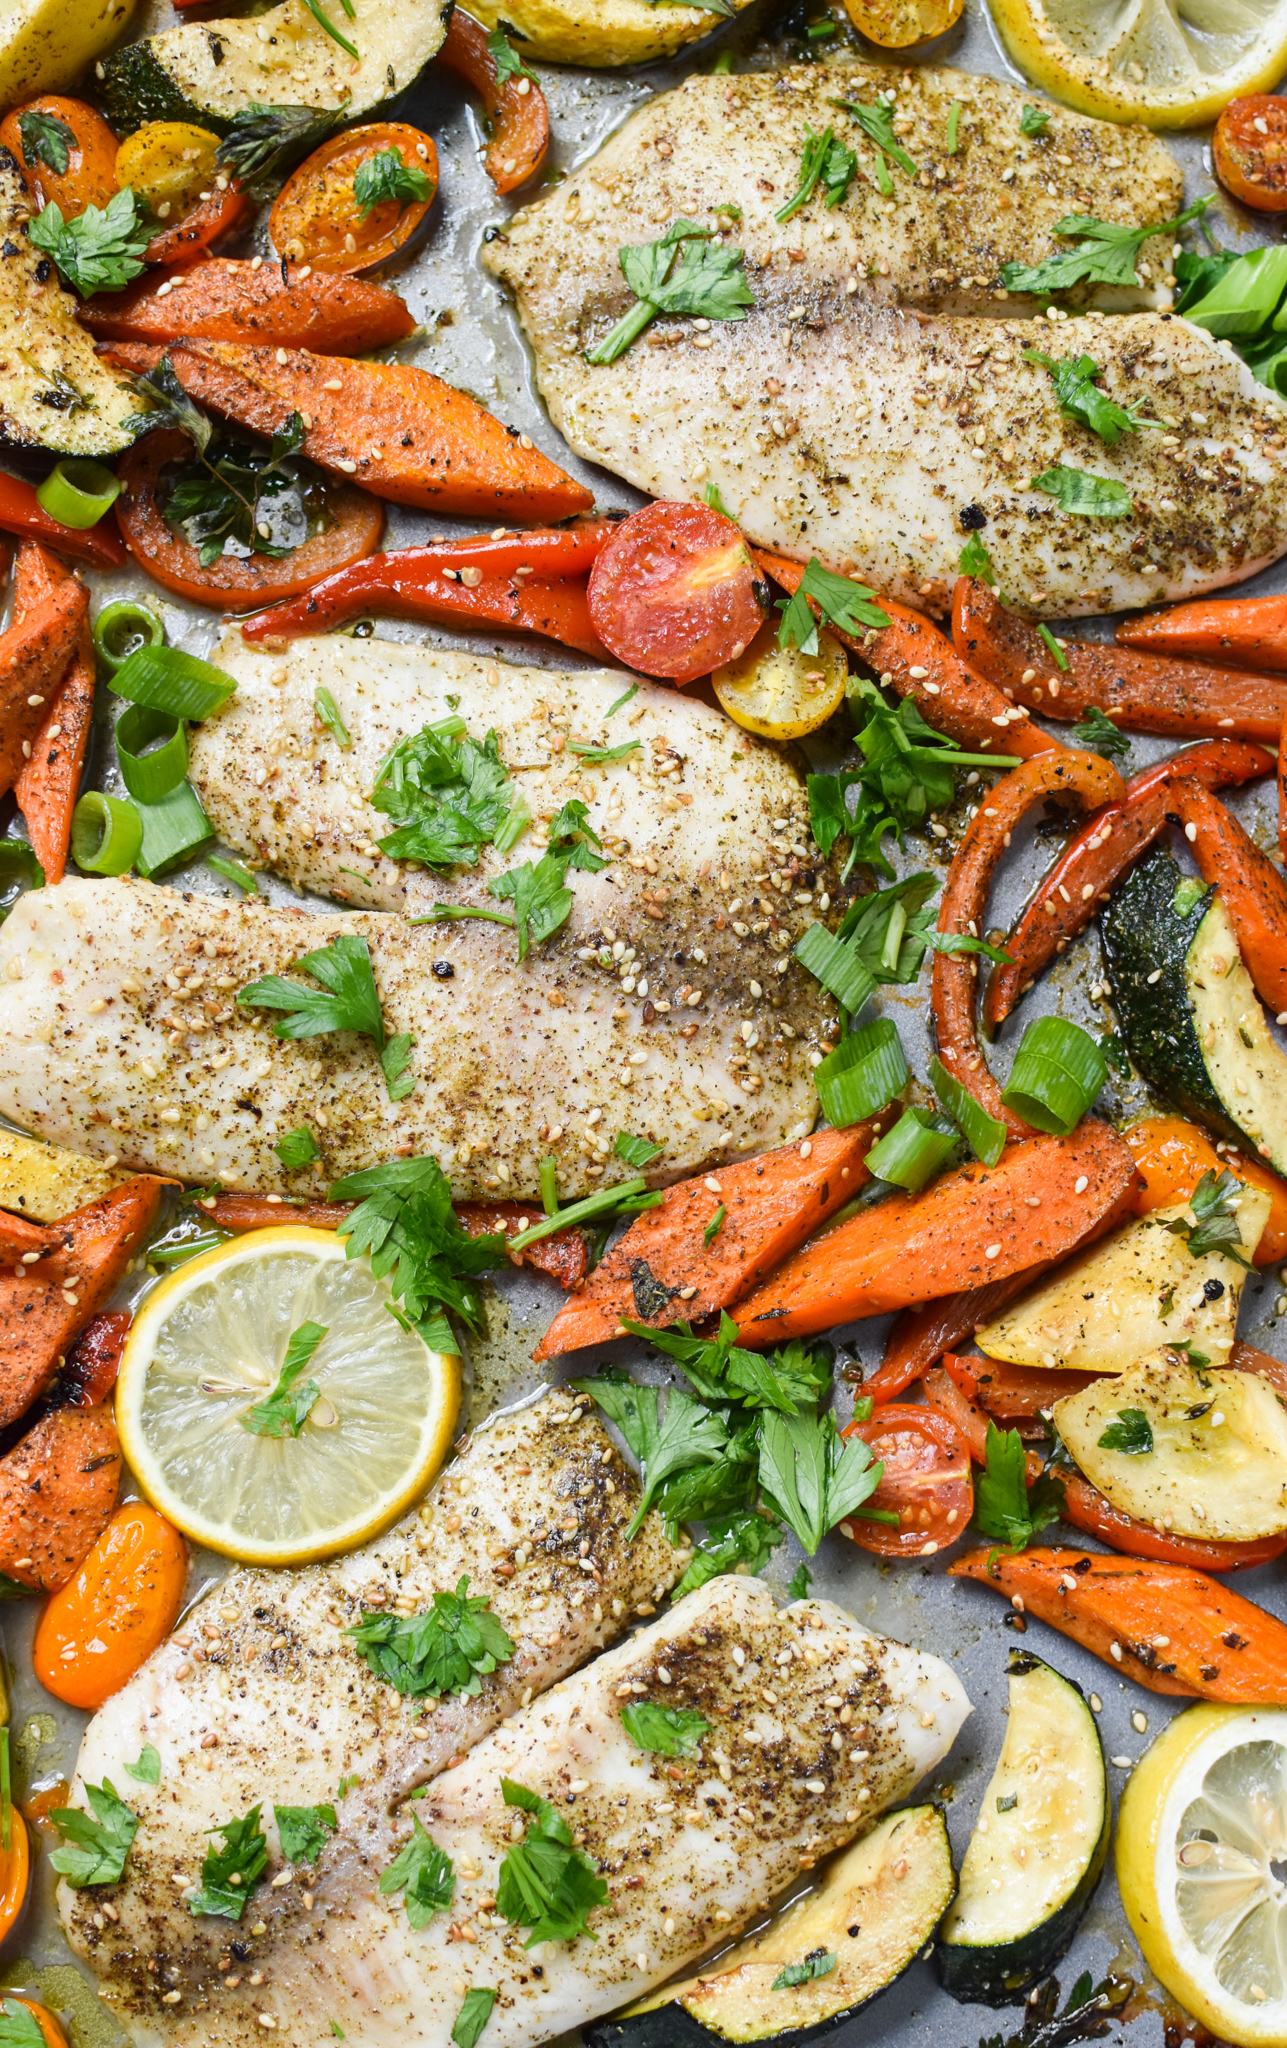 Mediterranean Baked Tilapia Recipe with lemon and vegetables.